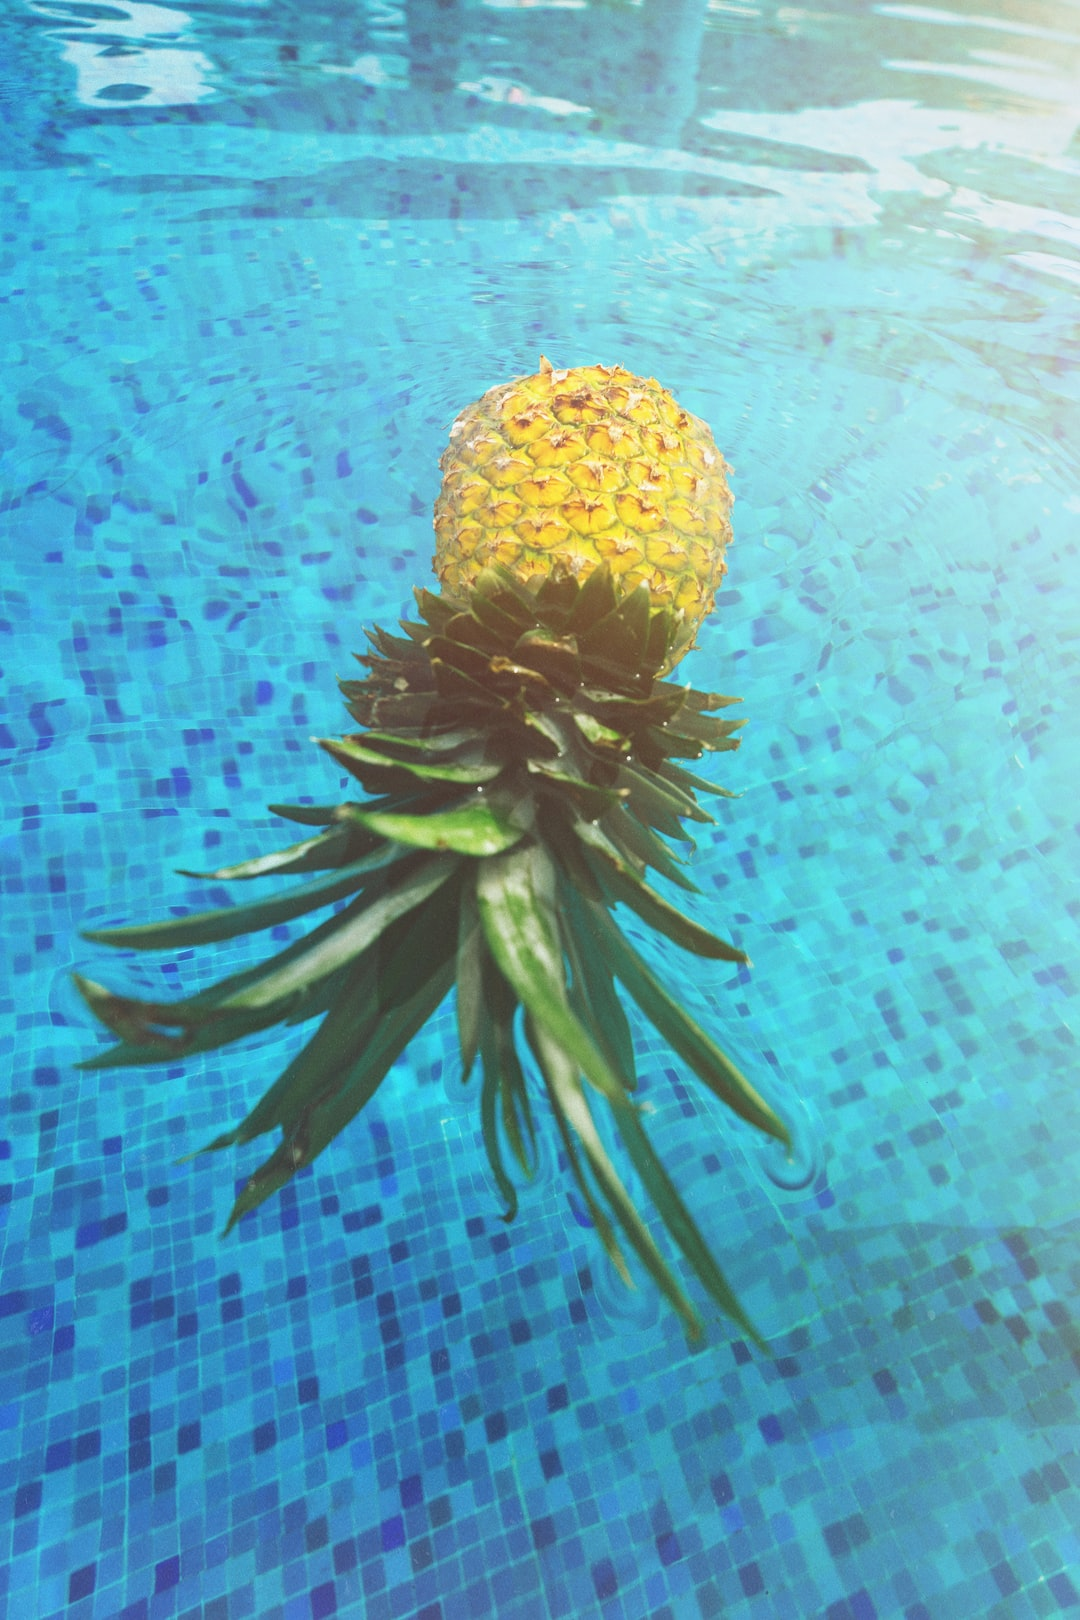 pineapple picture floating in pool in mexico